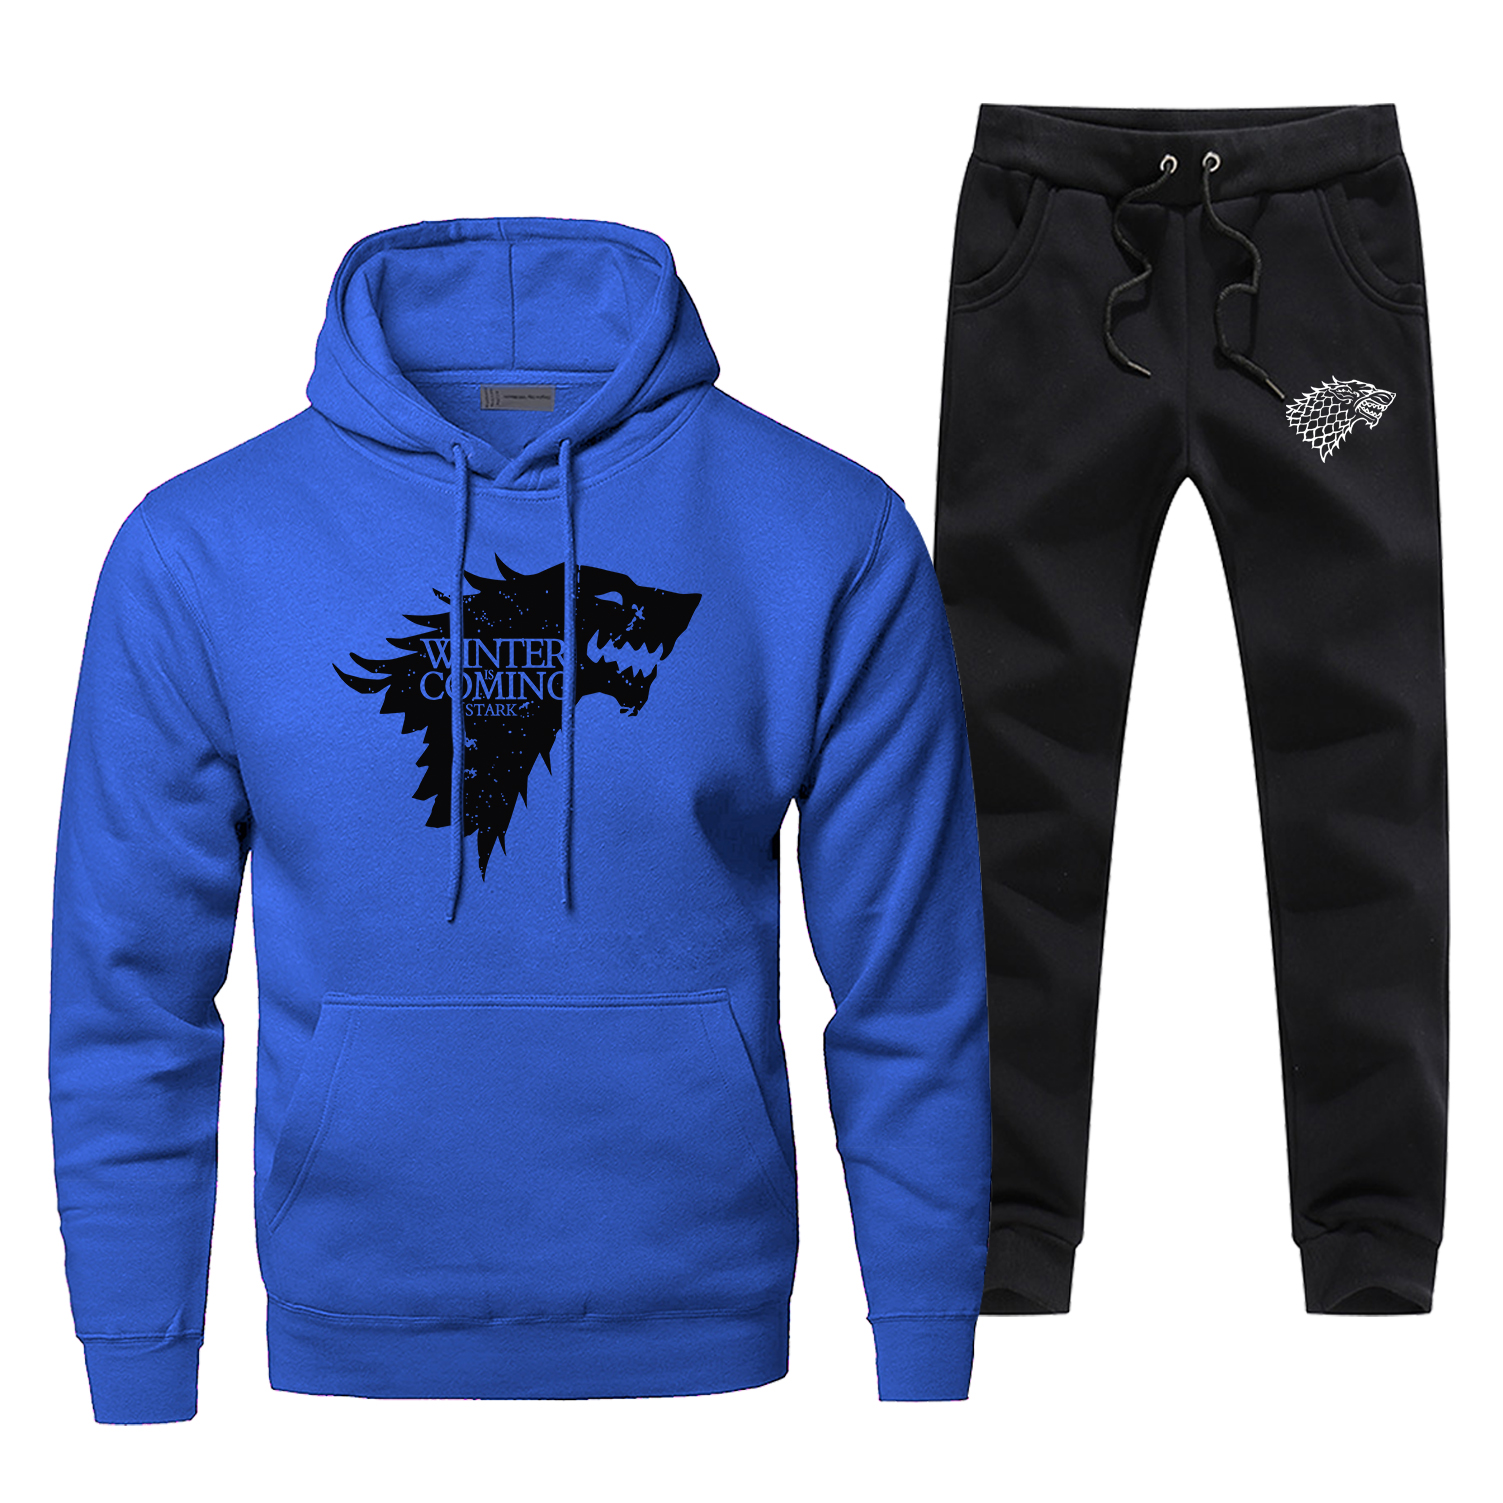 Winter Is Coming Game Of Thrones Print Men's Sportswear Hoodies Jon Snow House Stark Wolf Pants Sweatshirt Hoodie Streetwear